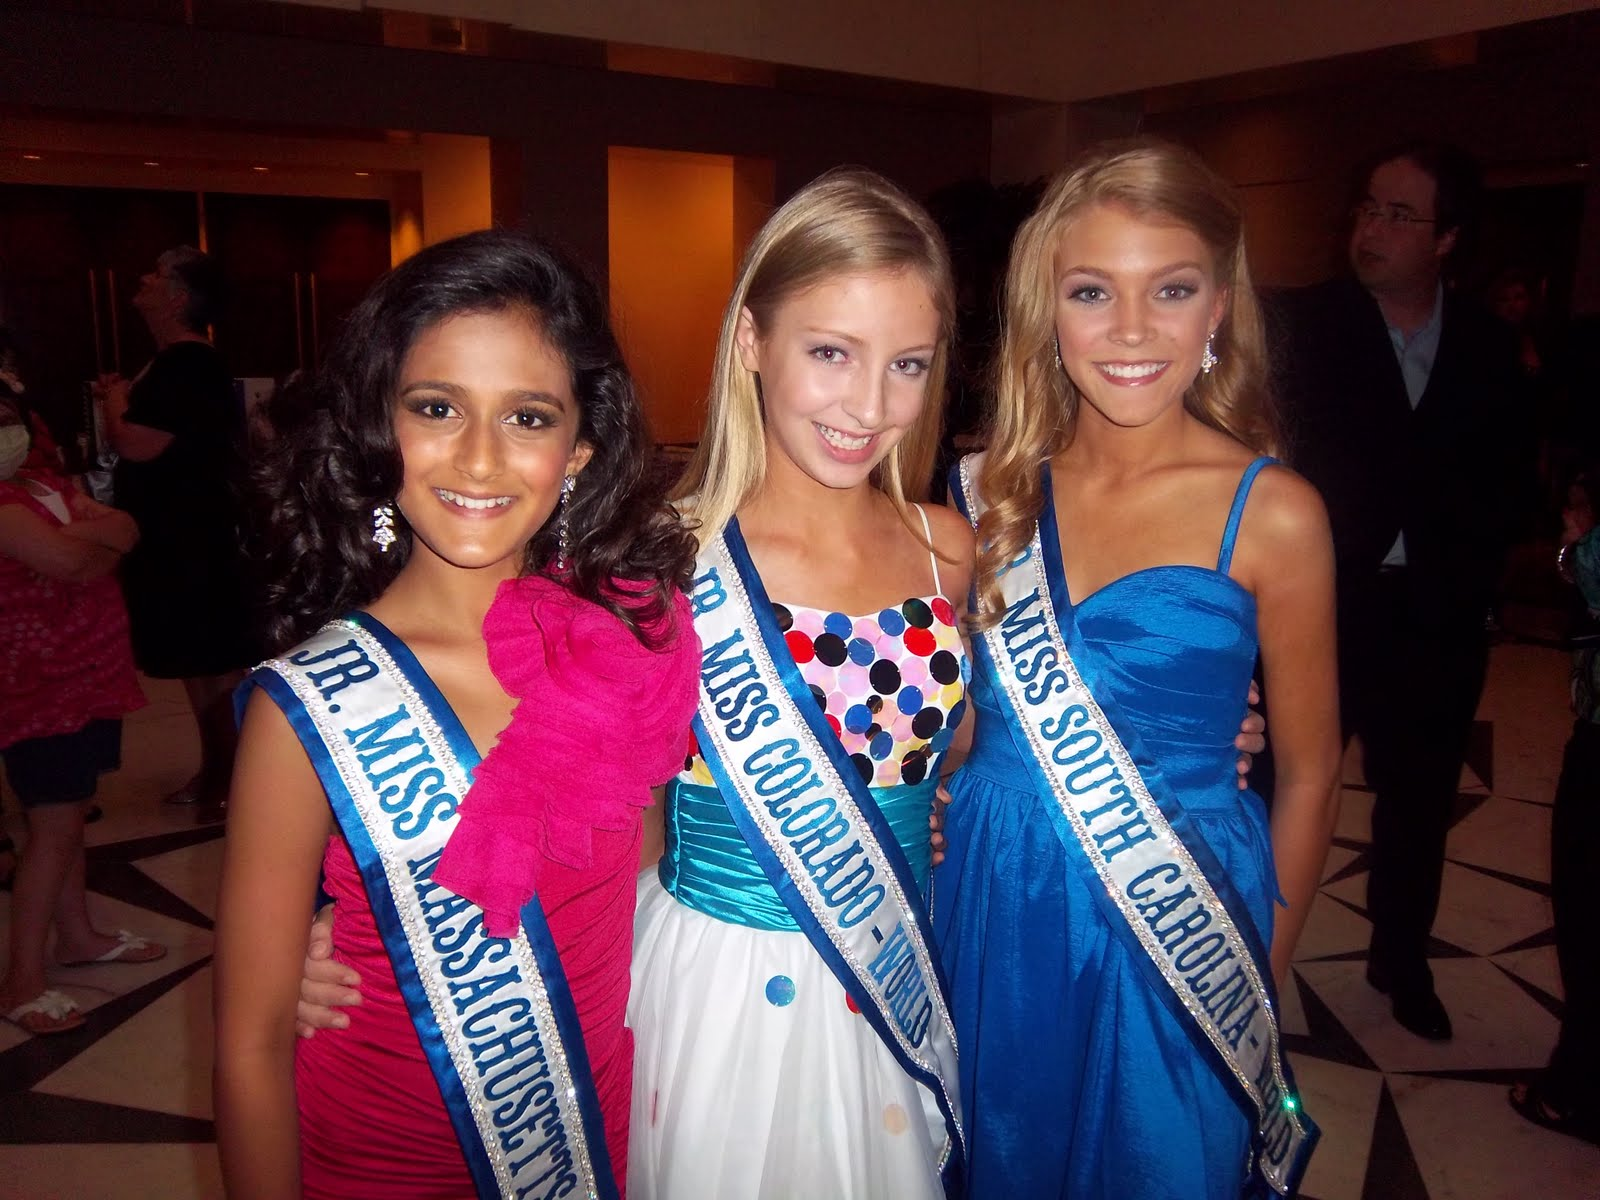 pagaent Miss teen colorado